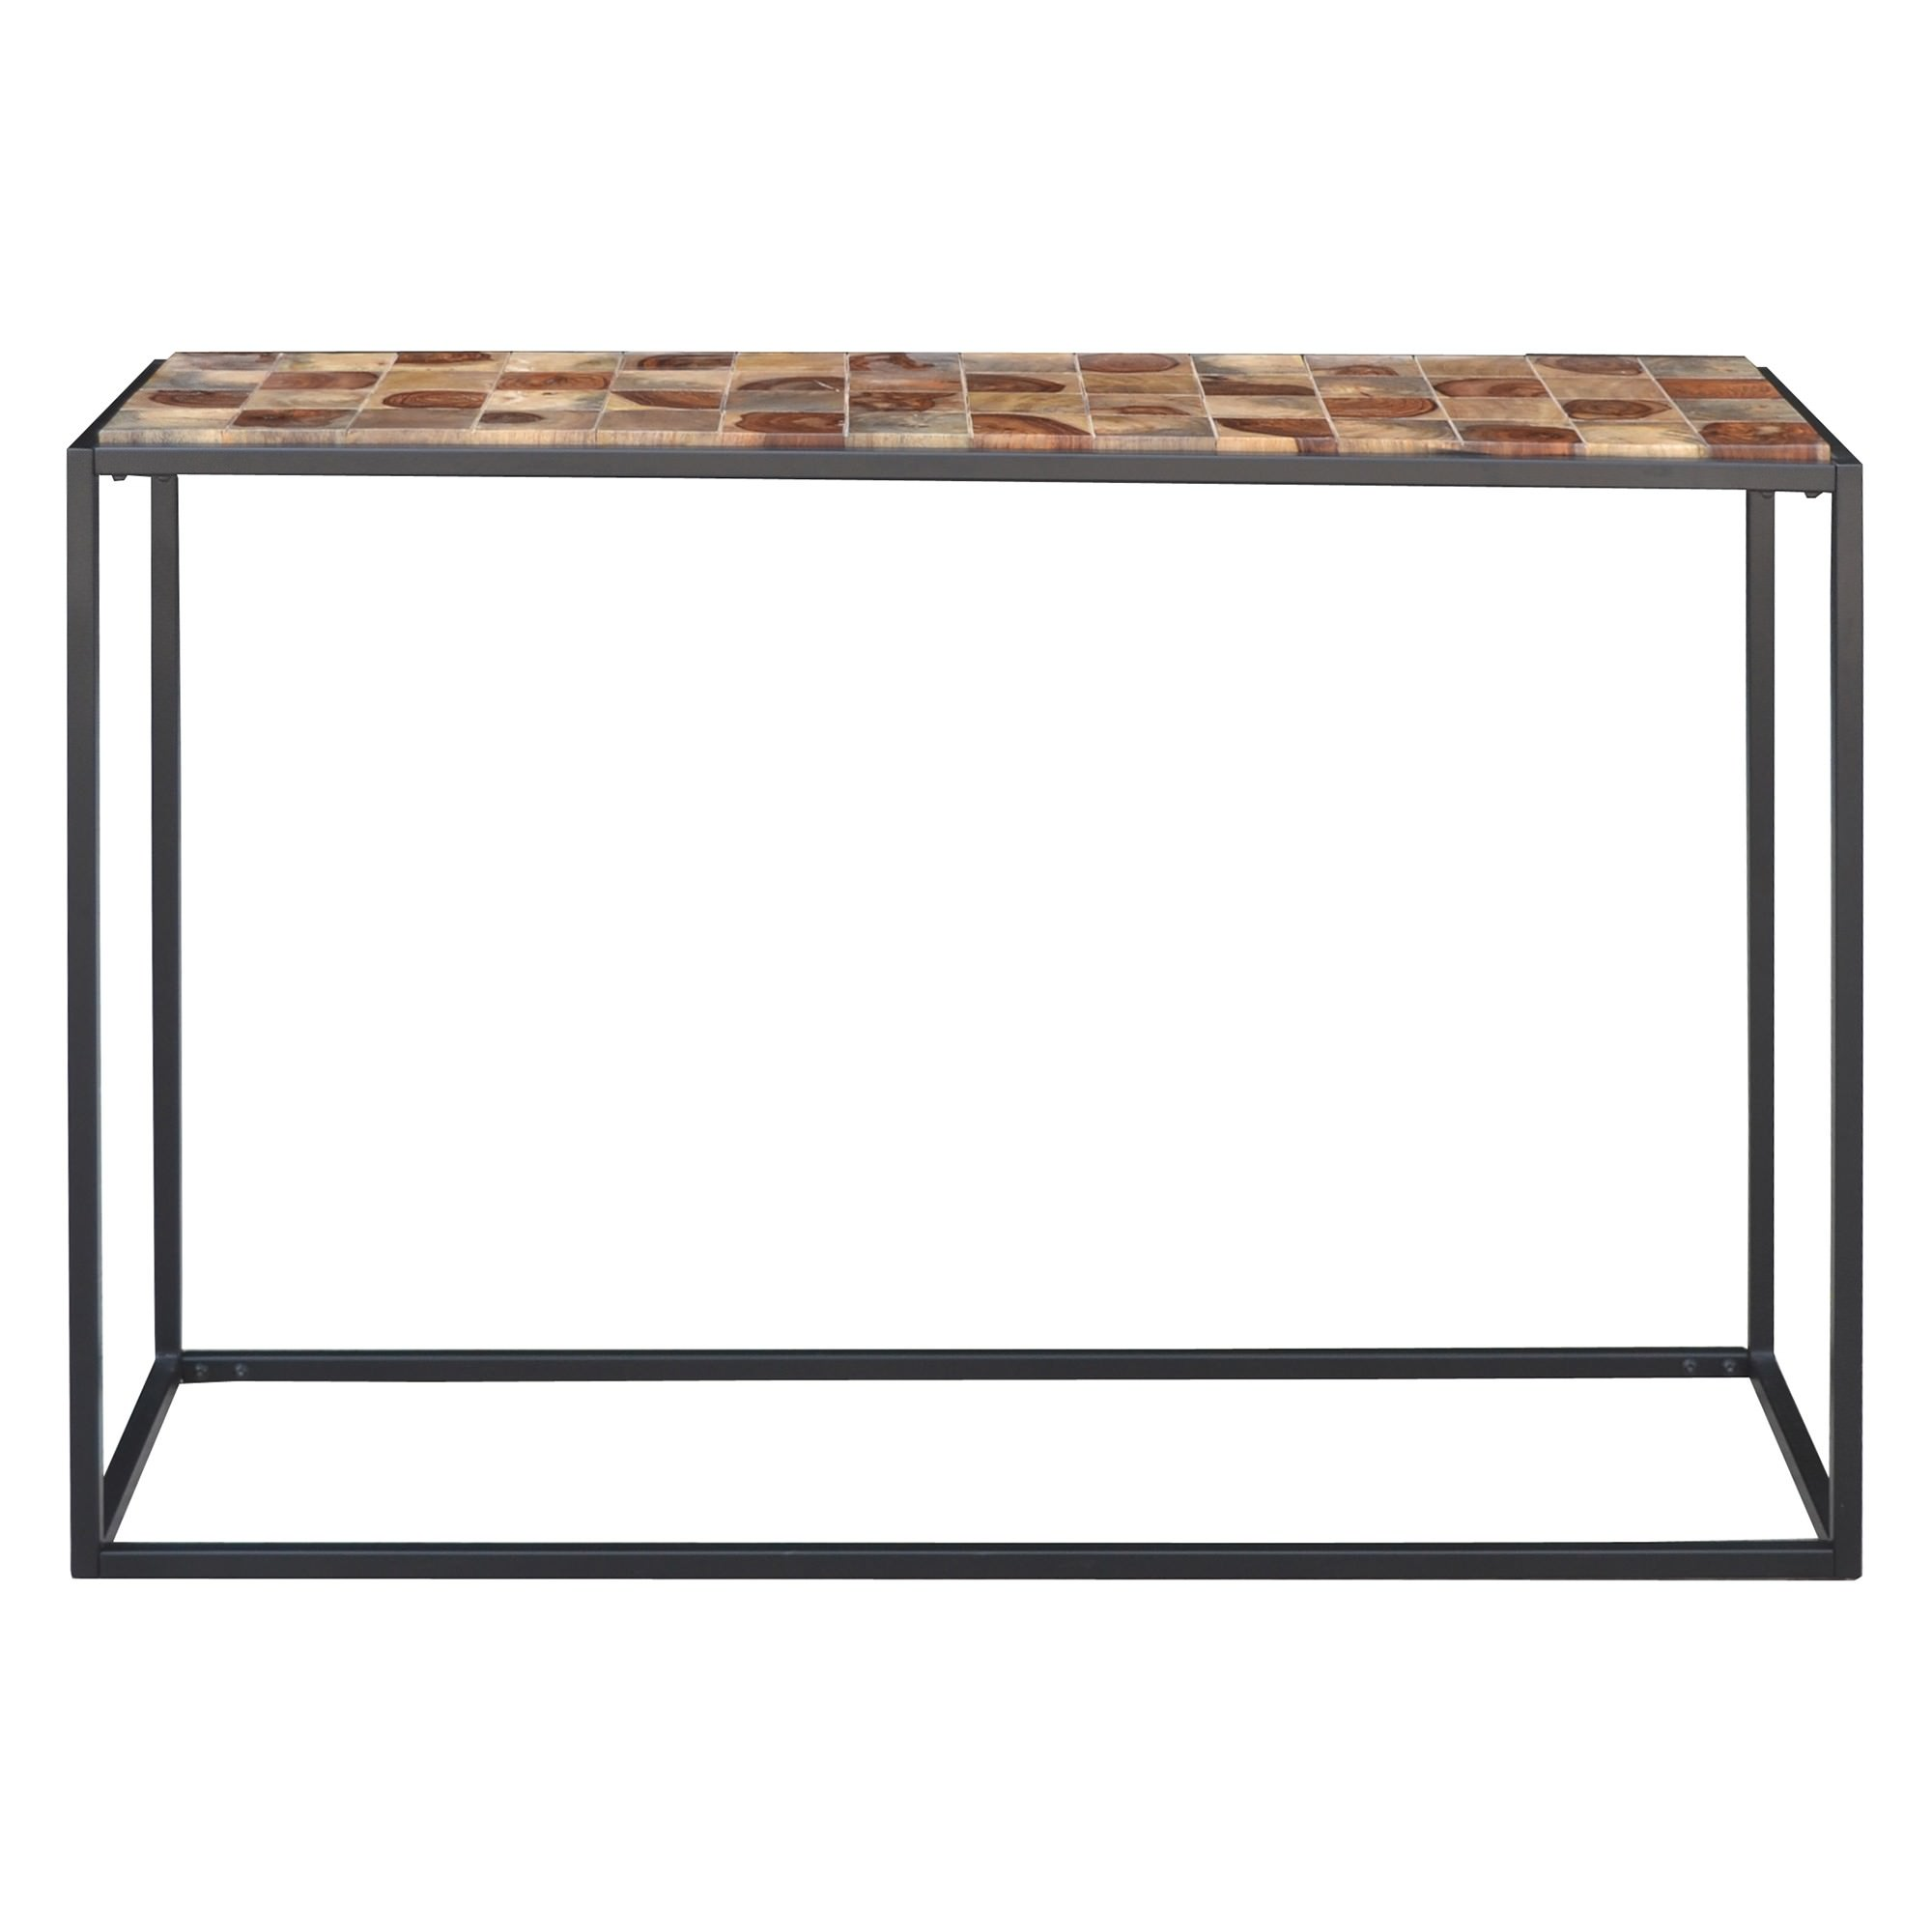 Treves Parquetry Timber & Metal Console Table, 122cm